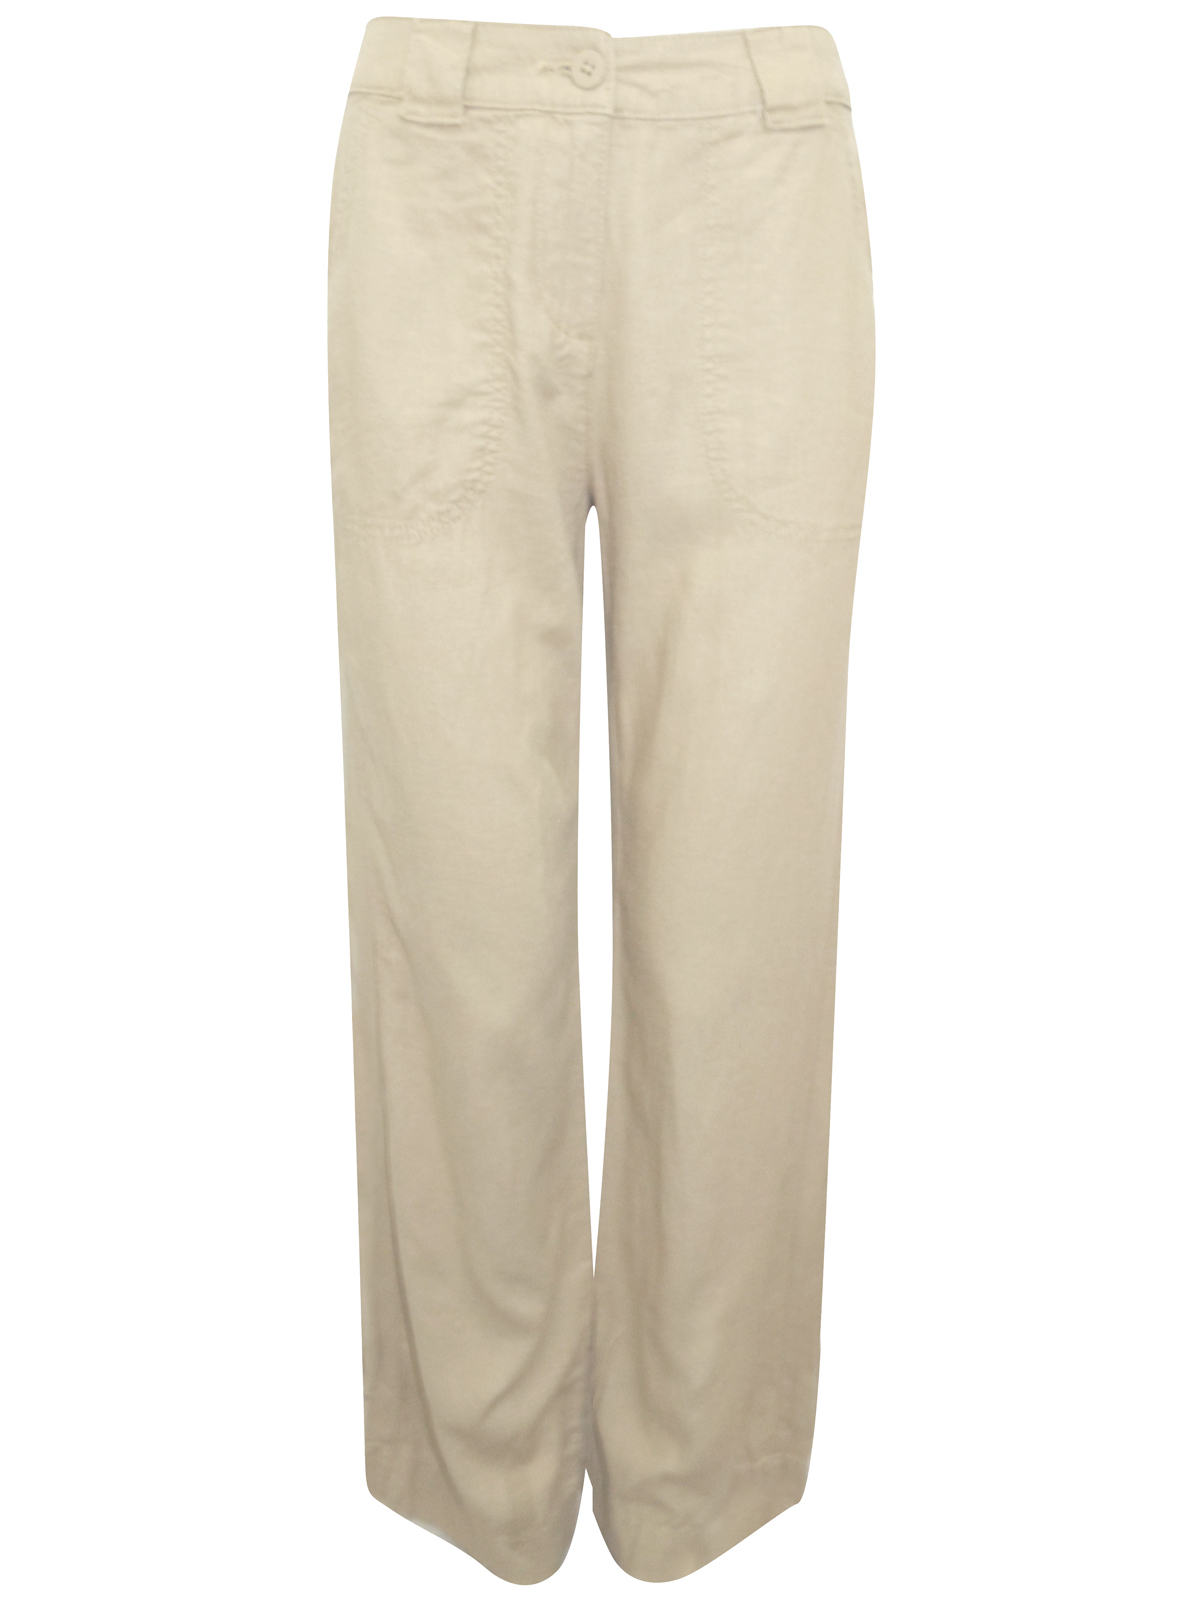 Marks-amp-Spencer-Women-Camel-Linen-Blend-Straight-Leg-Flat-Front-Trousers